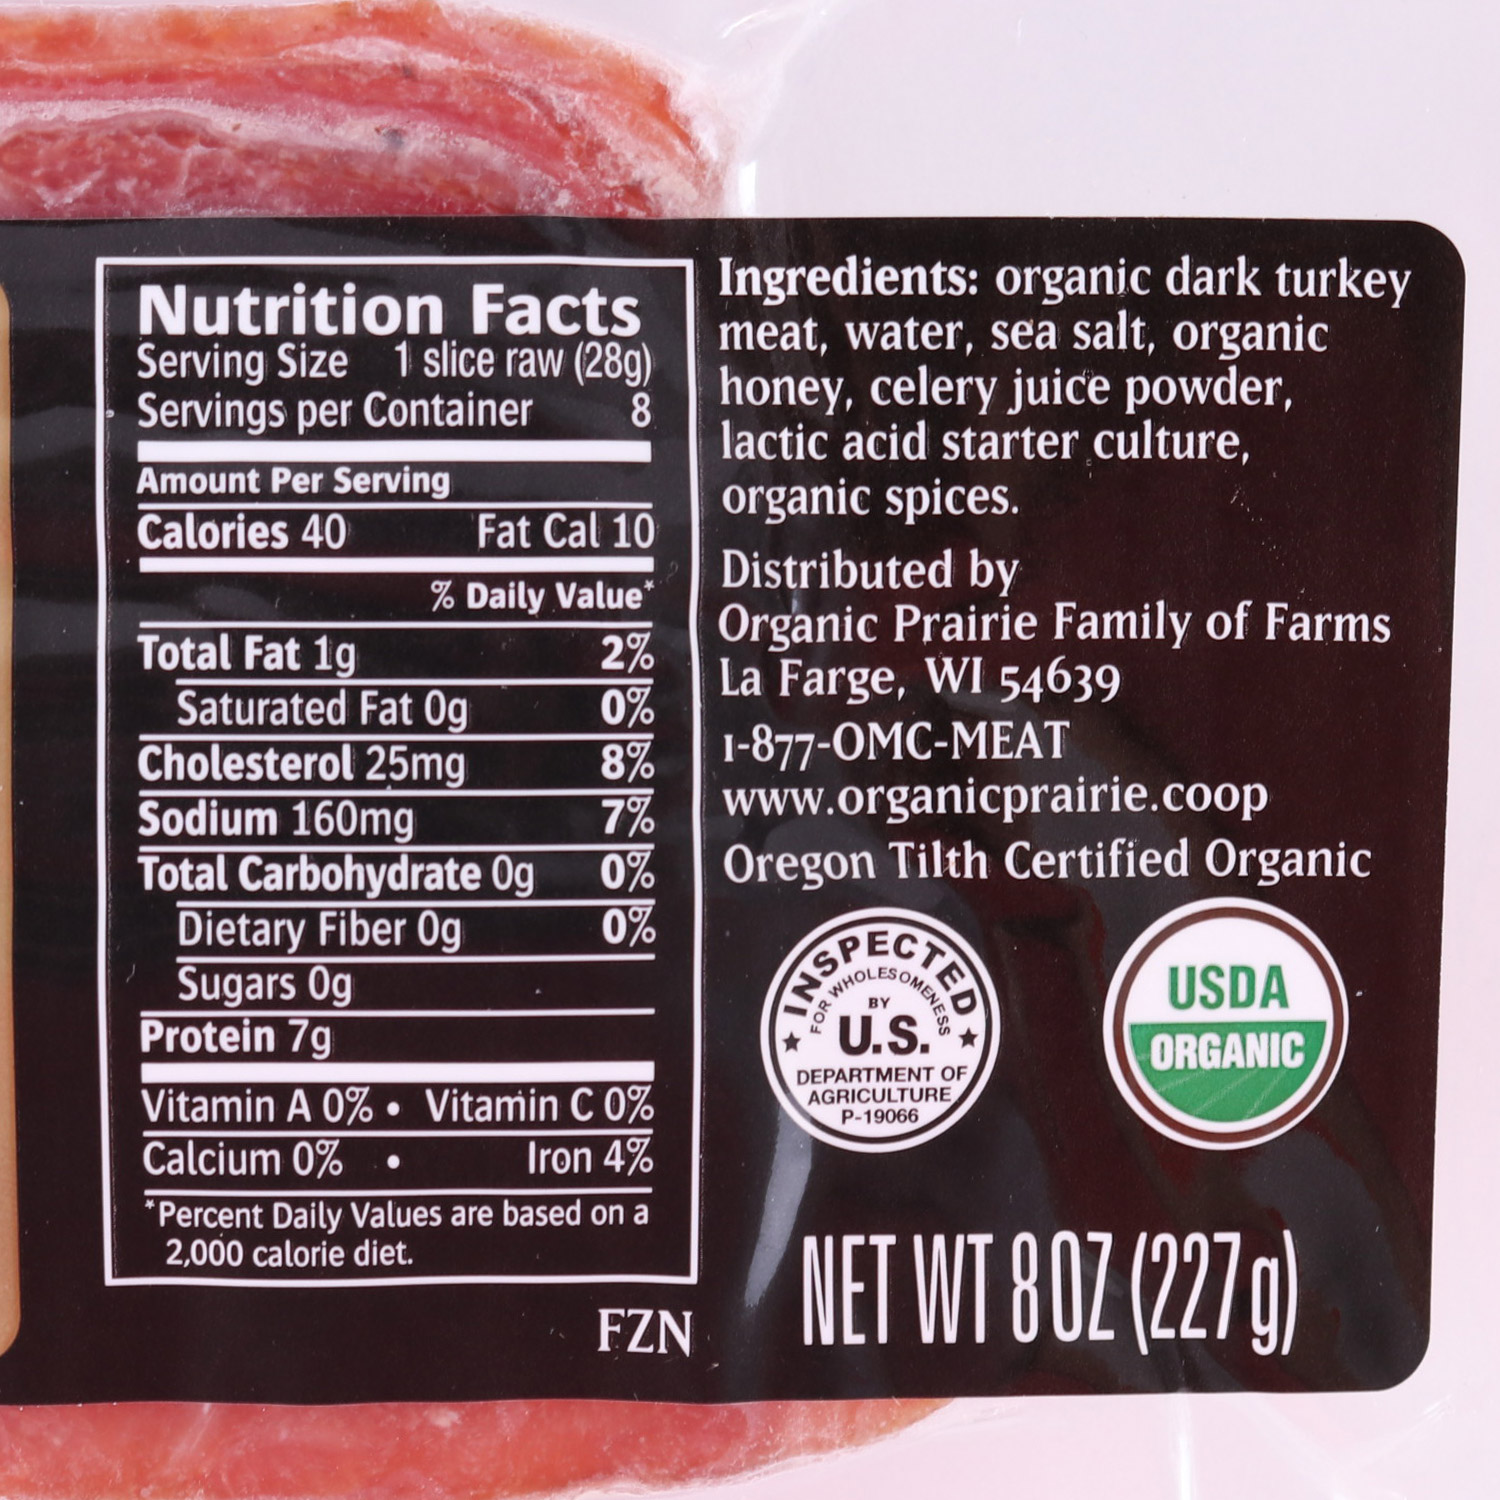 Bacon, Turkey-Organic